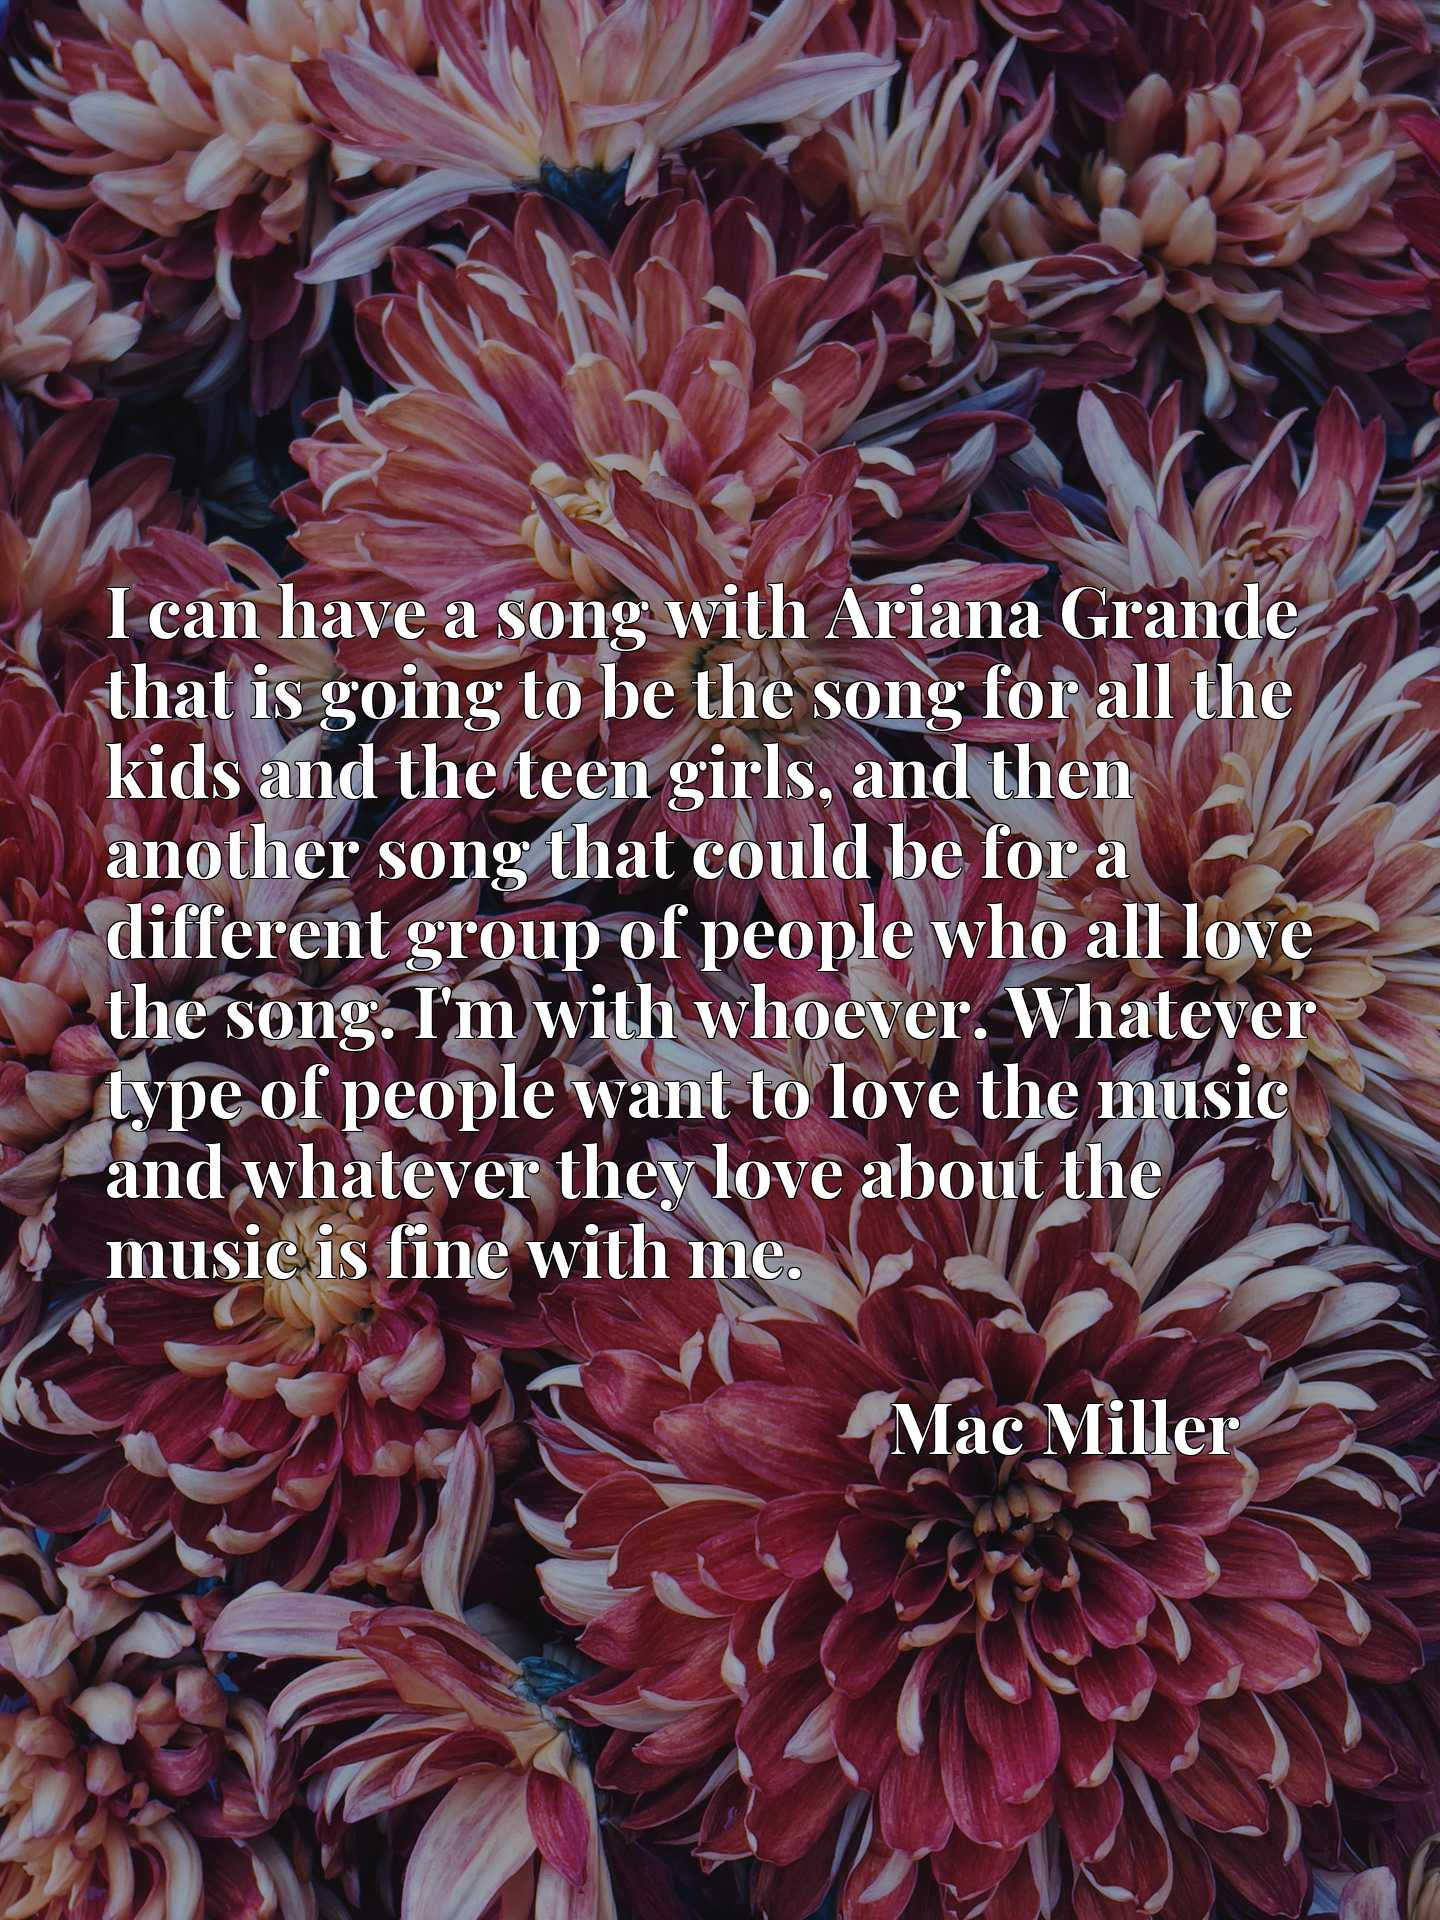 I can have a song with Ariana Grande that is going to be the song for all the kids and the teen girls, and then another song that could be for a different group of people who all love the song. I'm with whoever. Whatever type of people want to love the music and whatever they love about the music is fine with me.